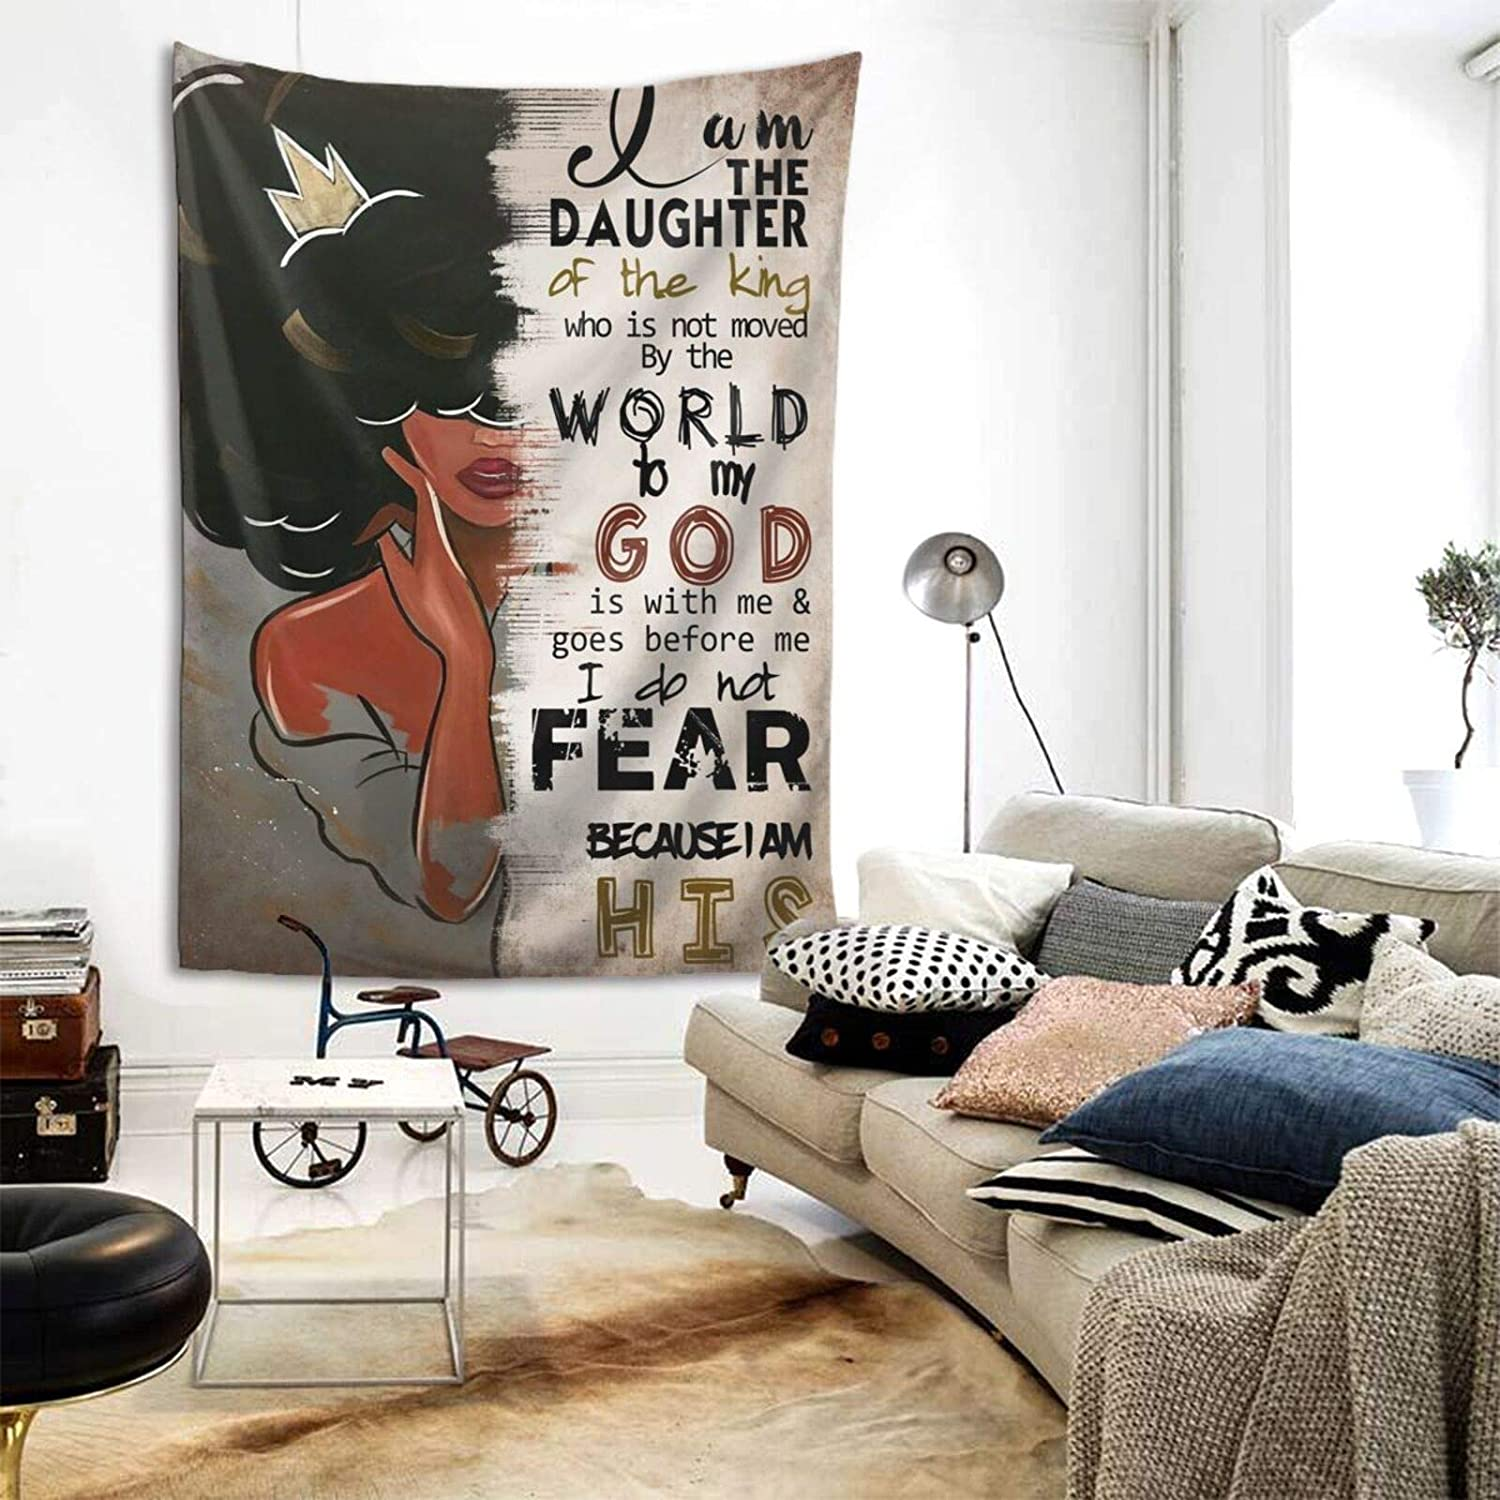 Black Art Wall Tapestry African American Tapestries Hippie Art Wall Black Queen Decoration Wall Hanging Tablecloth Bedroom Living Room Dorm Room Best Gift, 60x80 Inch